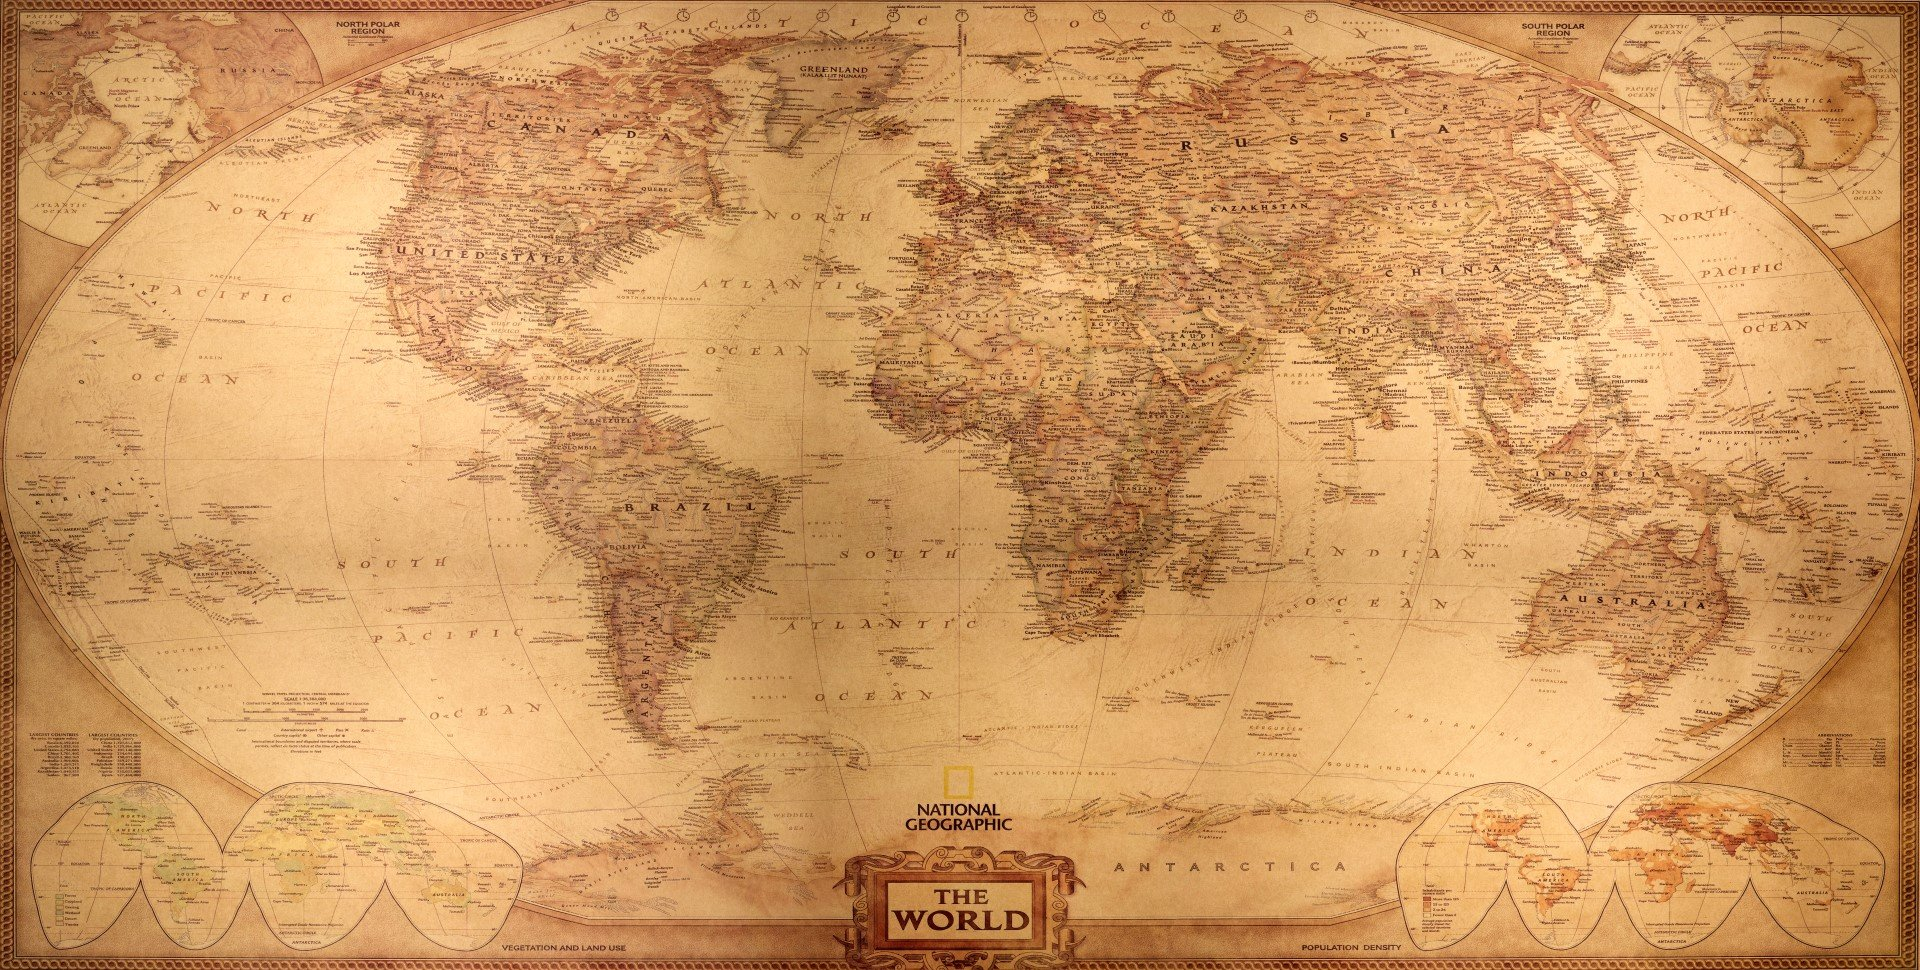 National Geographic Ancient World Map Framed Canvas Prints Modern Wall Art Decor by Fengshui-paintings.com